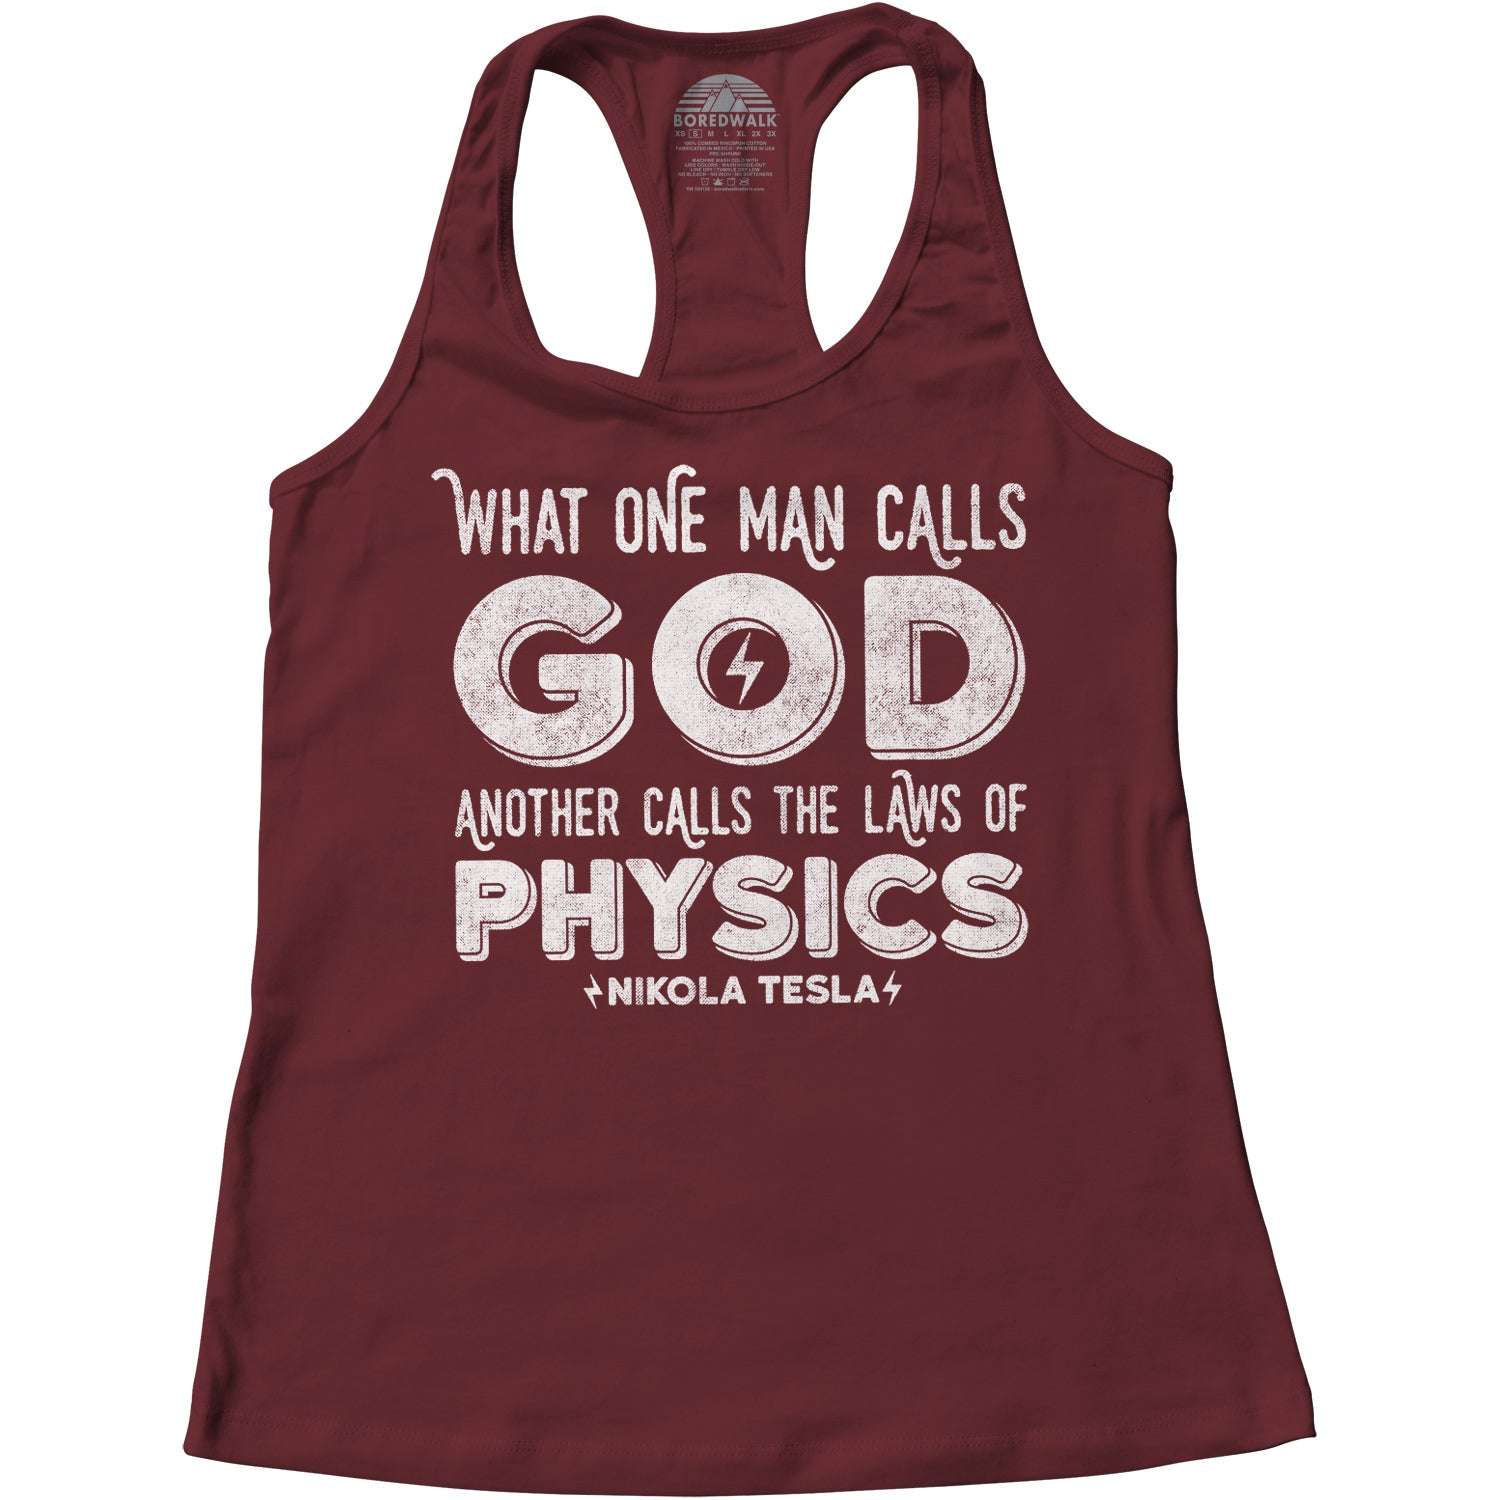 Women's What One Man Calls God Another Calls Physics Racerback Tank Top